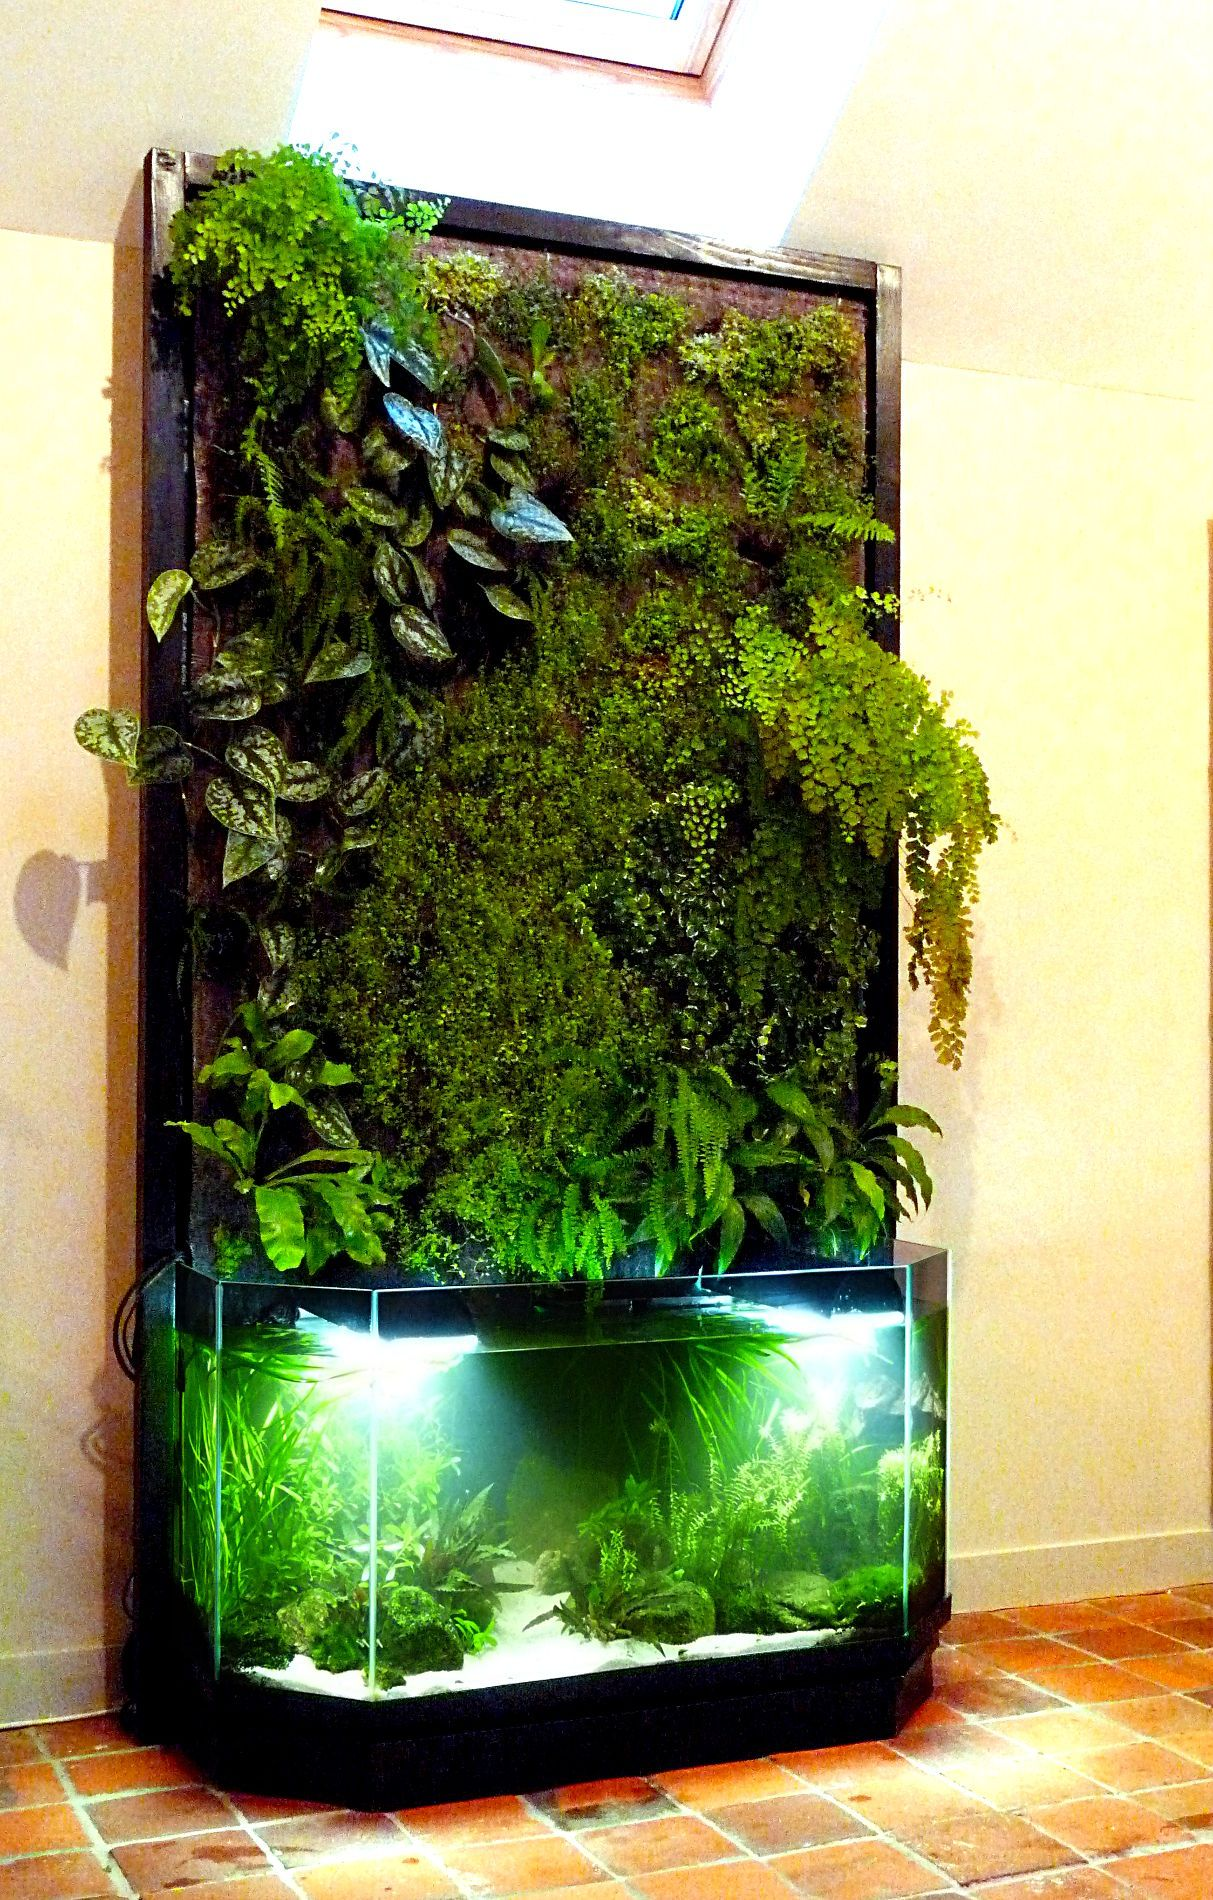 Fish for vertical aquarium - Aquaponics And Green Wall Design Nature